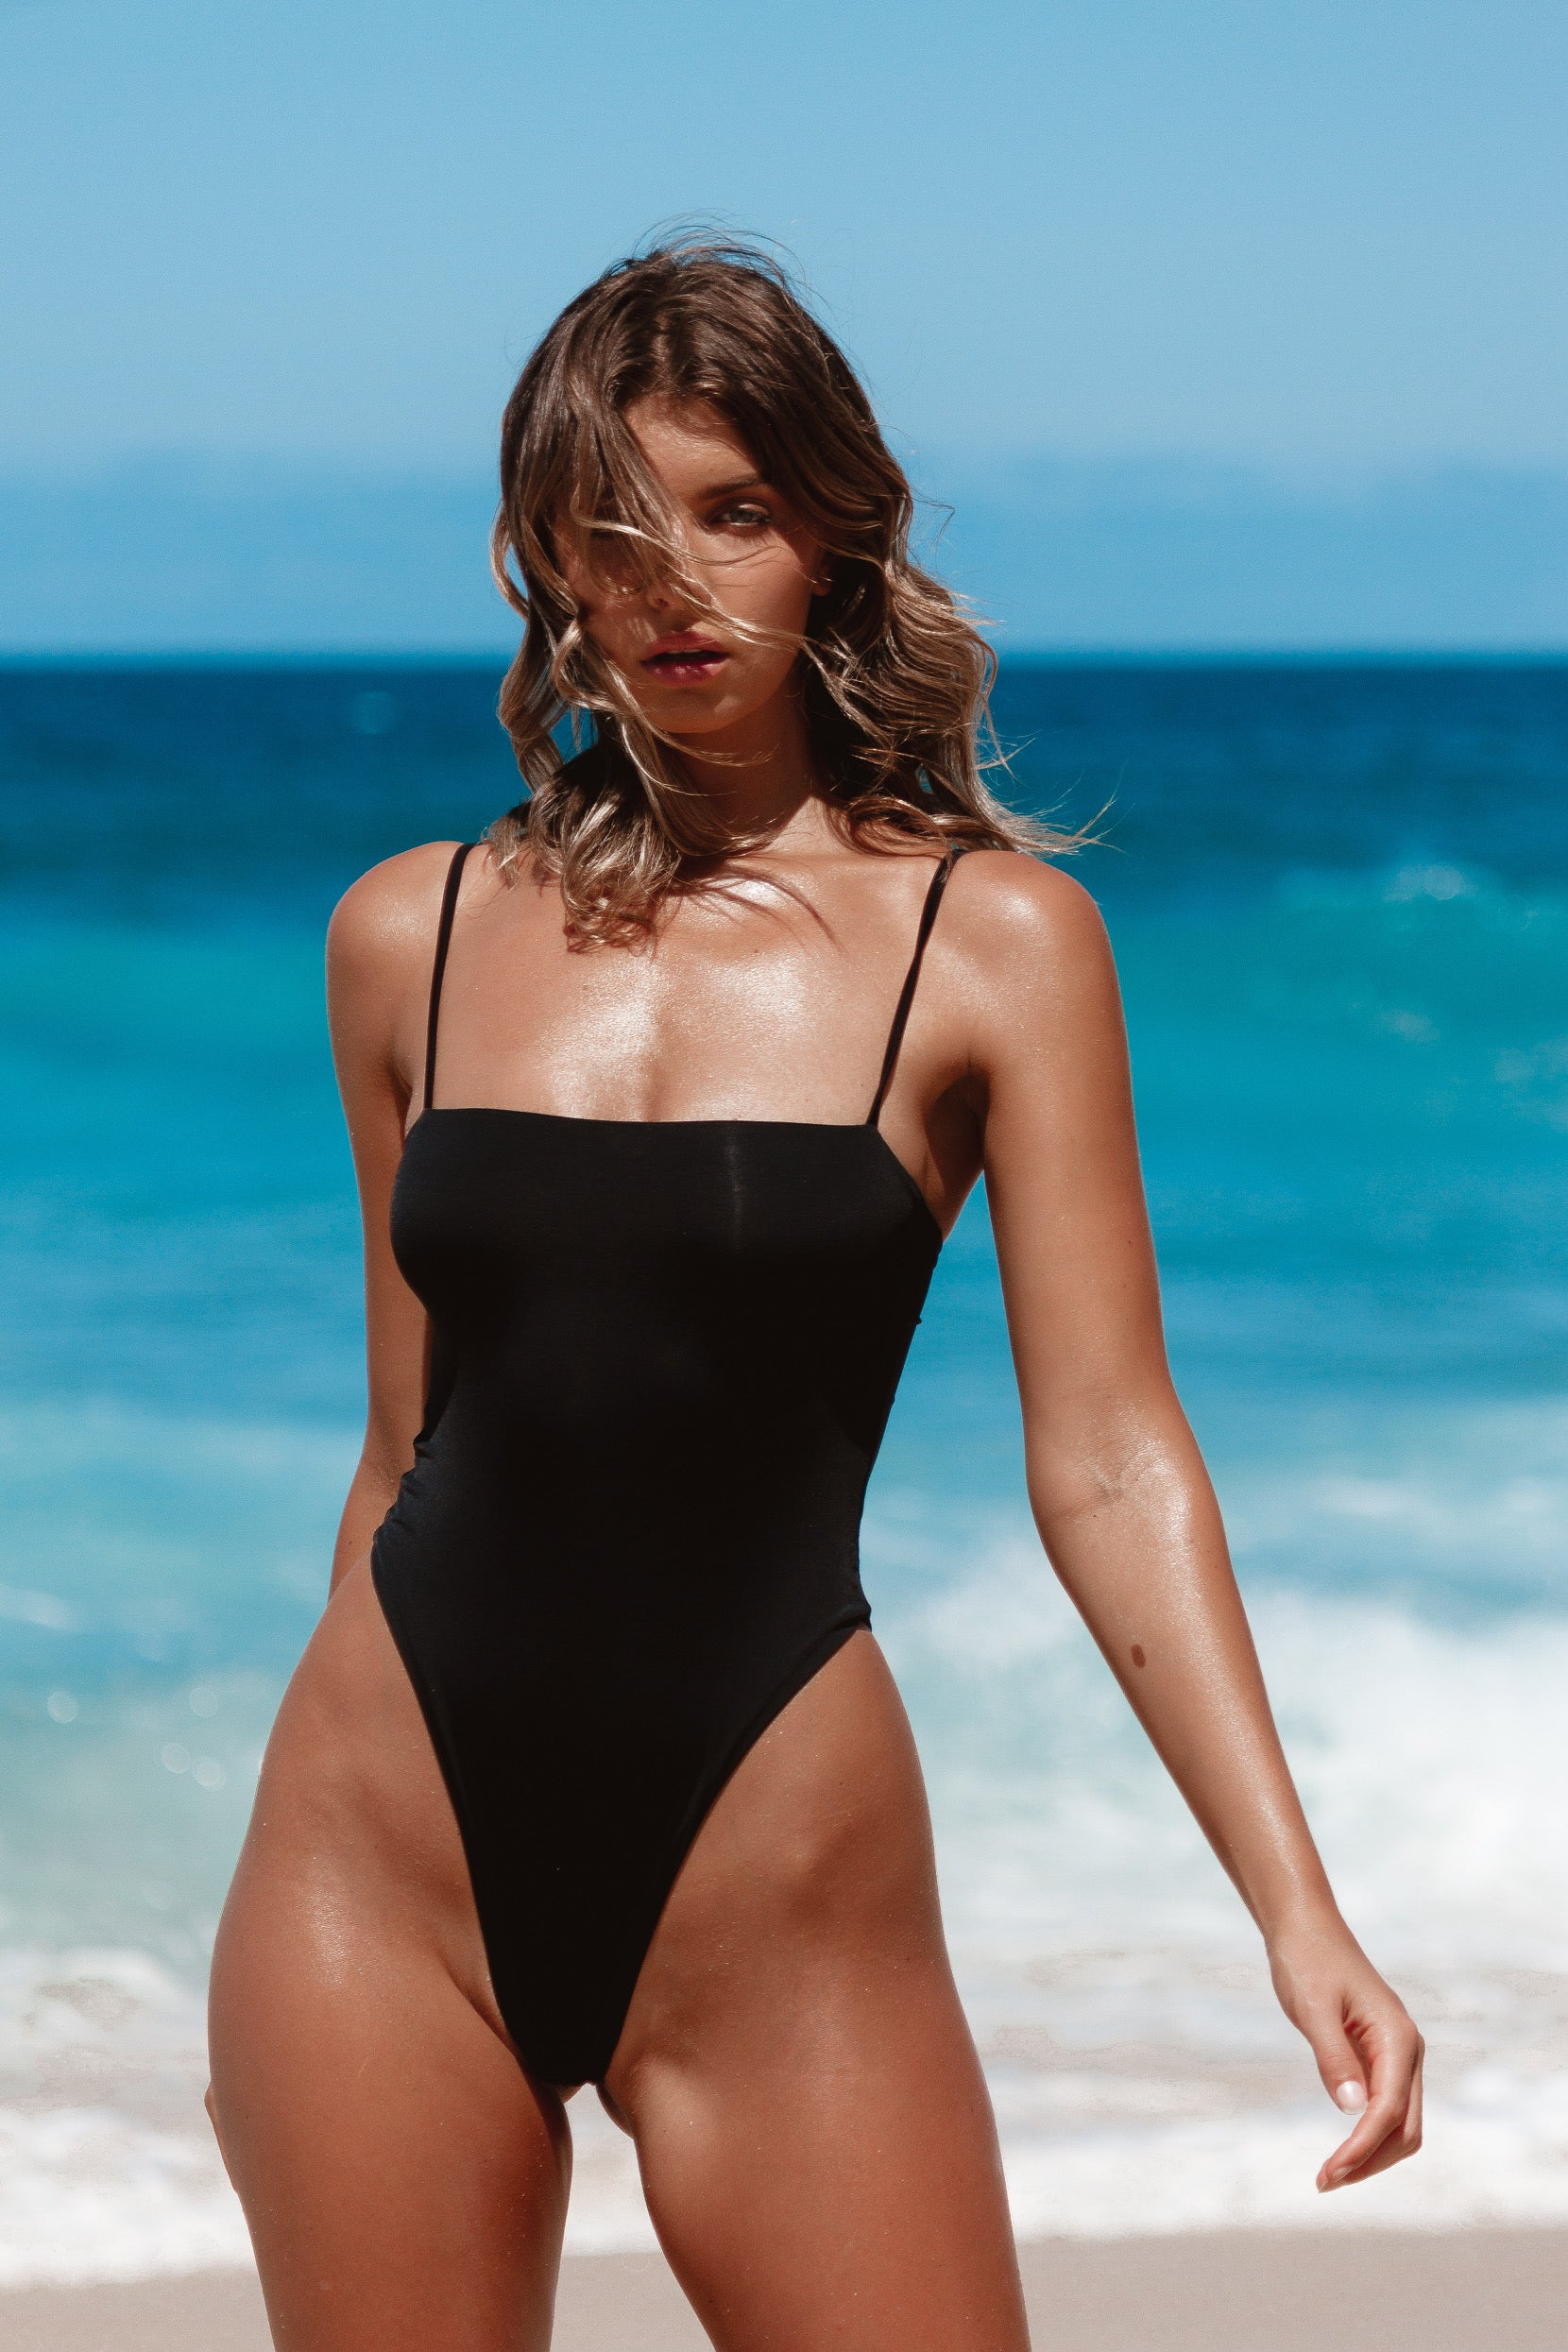 IIXIIST Joanna Bodysuit Midnight Black Seamless Swimwear One Piece Frankii Swim Frankie Swimwear